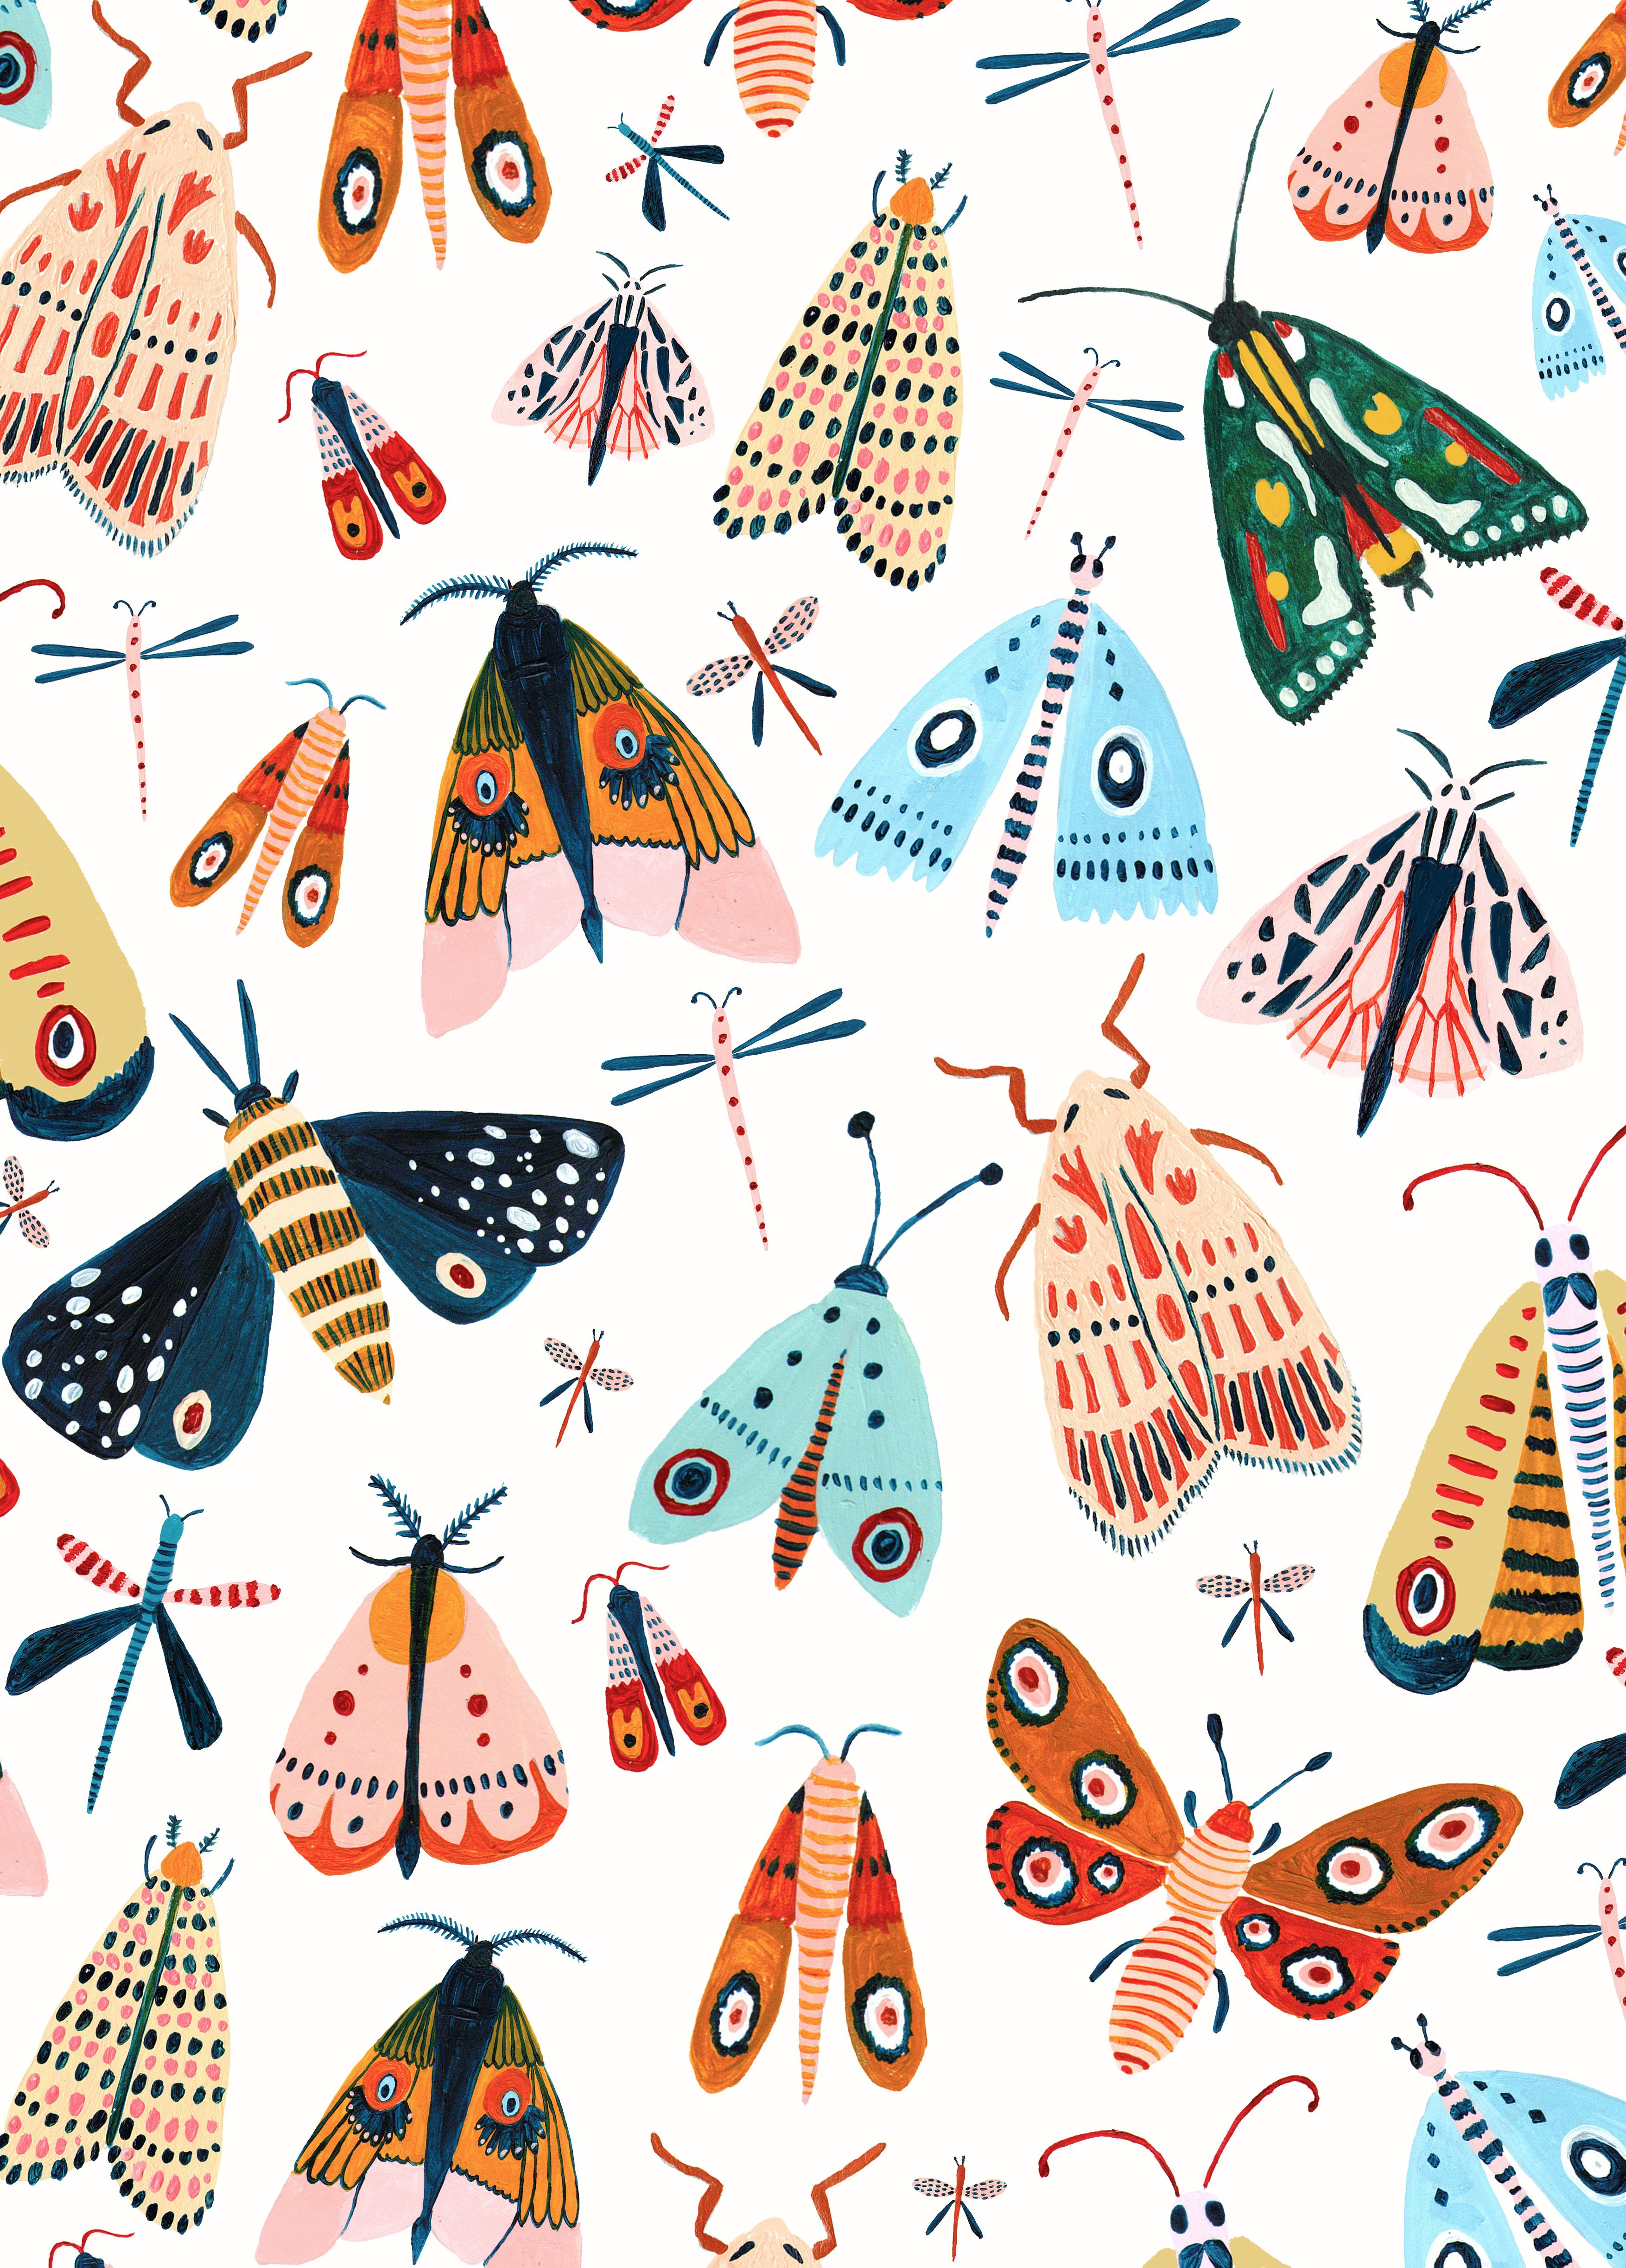 The Design A Playful Woodland Design Featuring All The Best Moth Species This Wall Art Wa Animal Design Illustration Illustration Art Nature Illustration